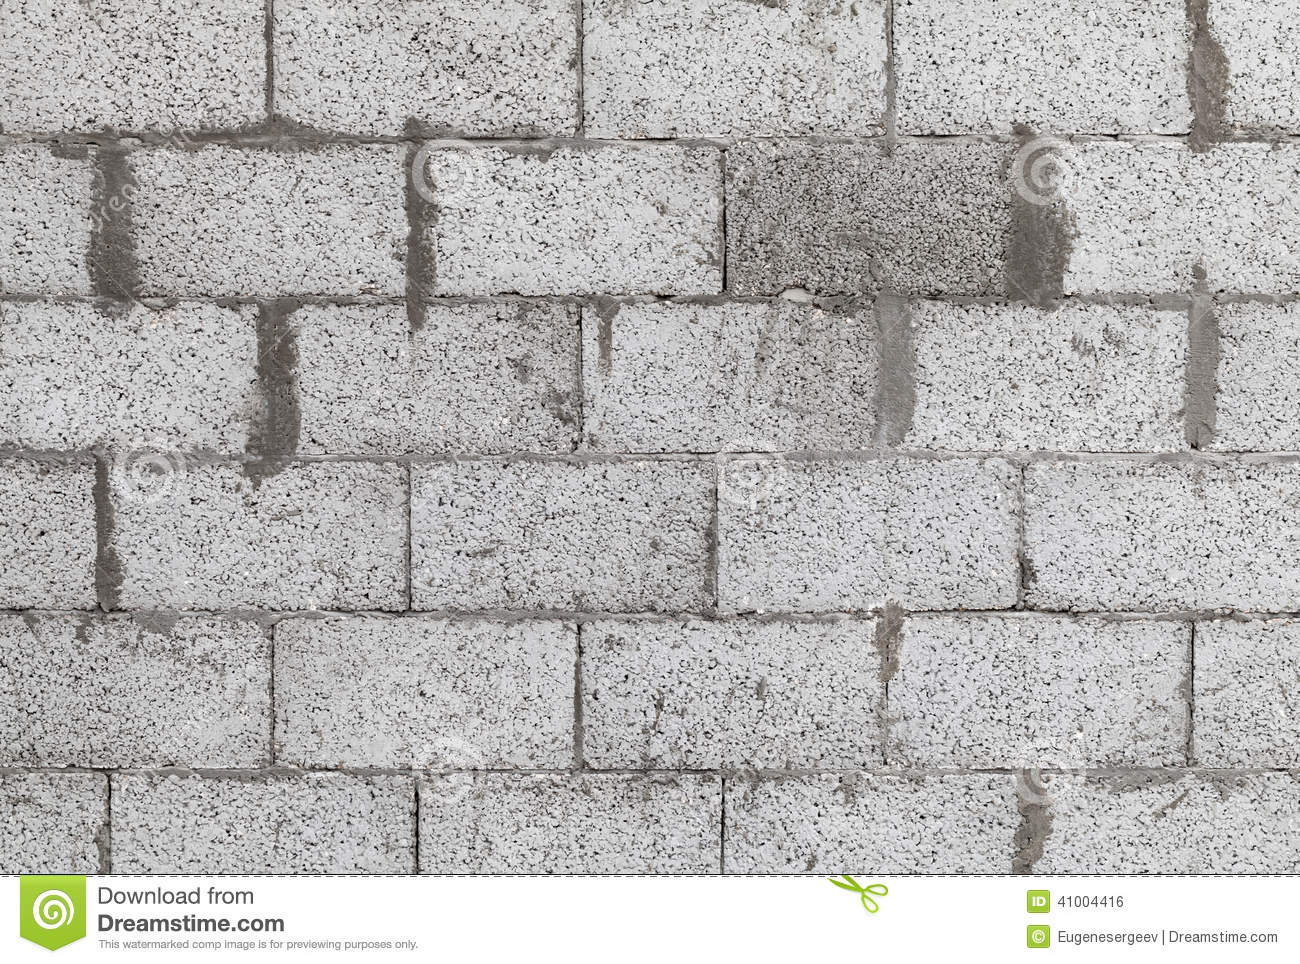 Aerated Concrete Blocks Stock Photo - Image: 43514404